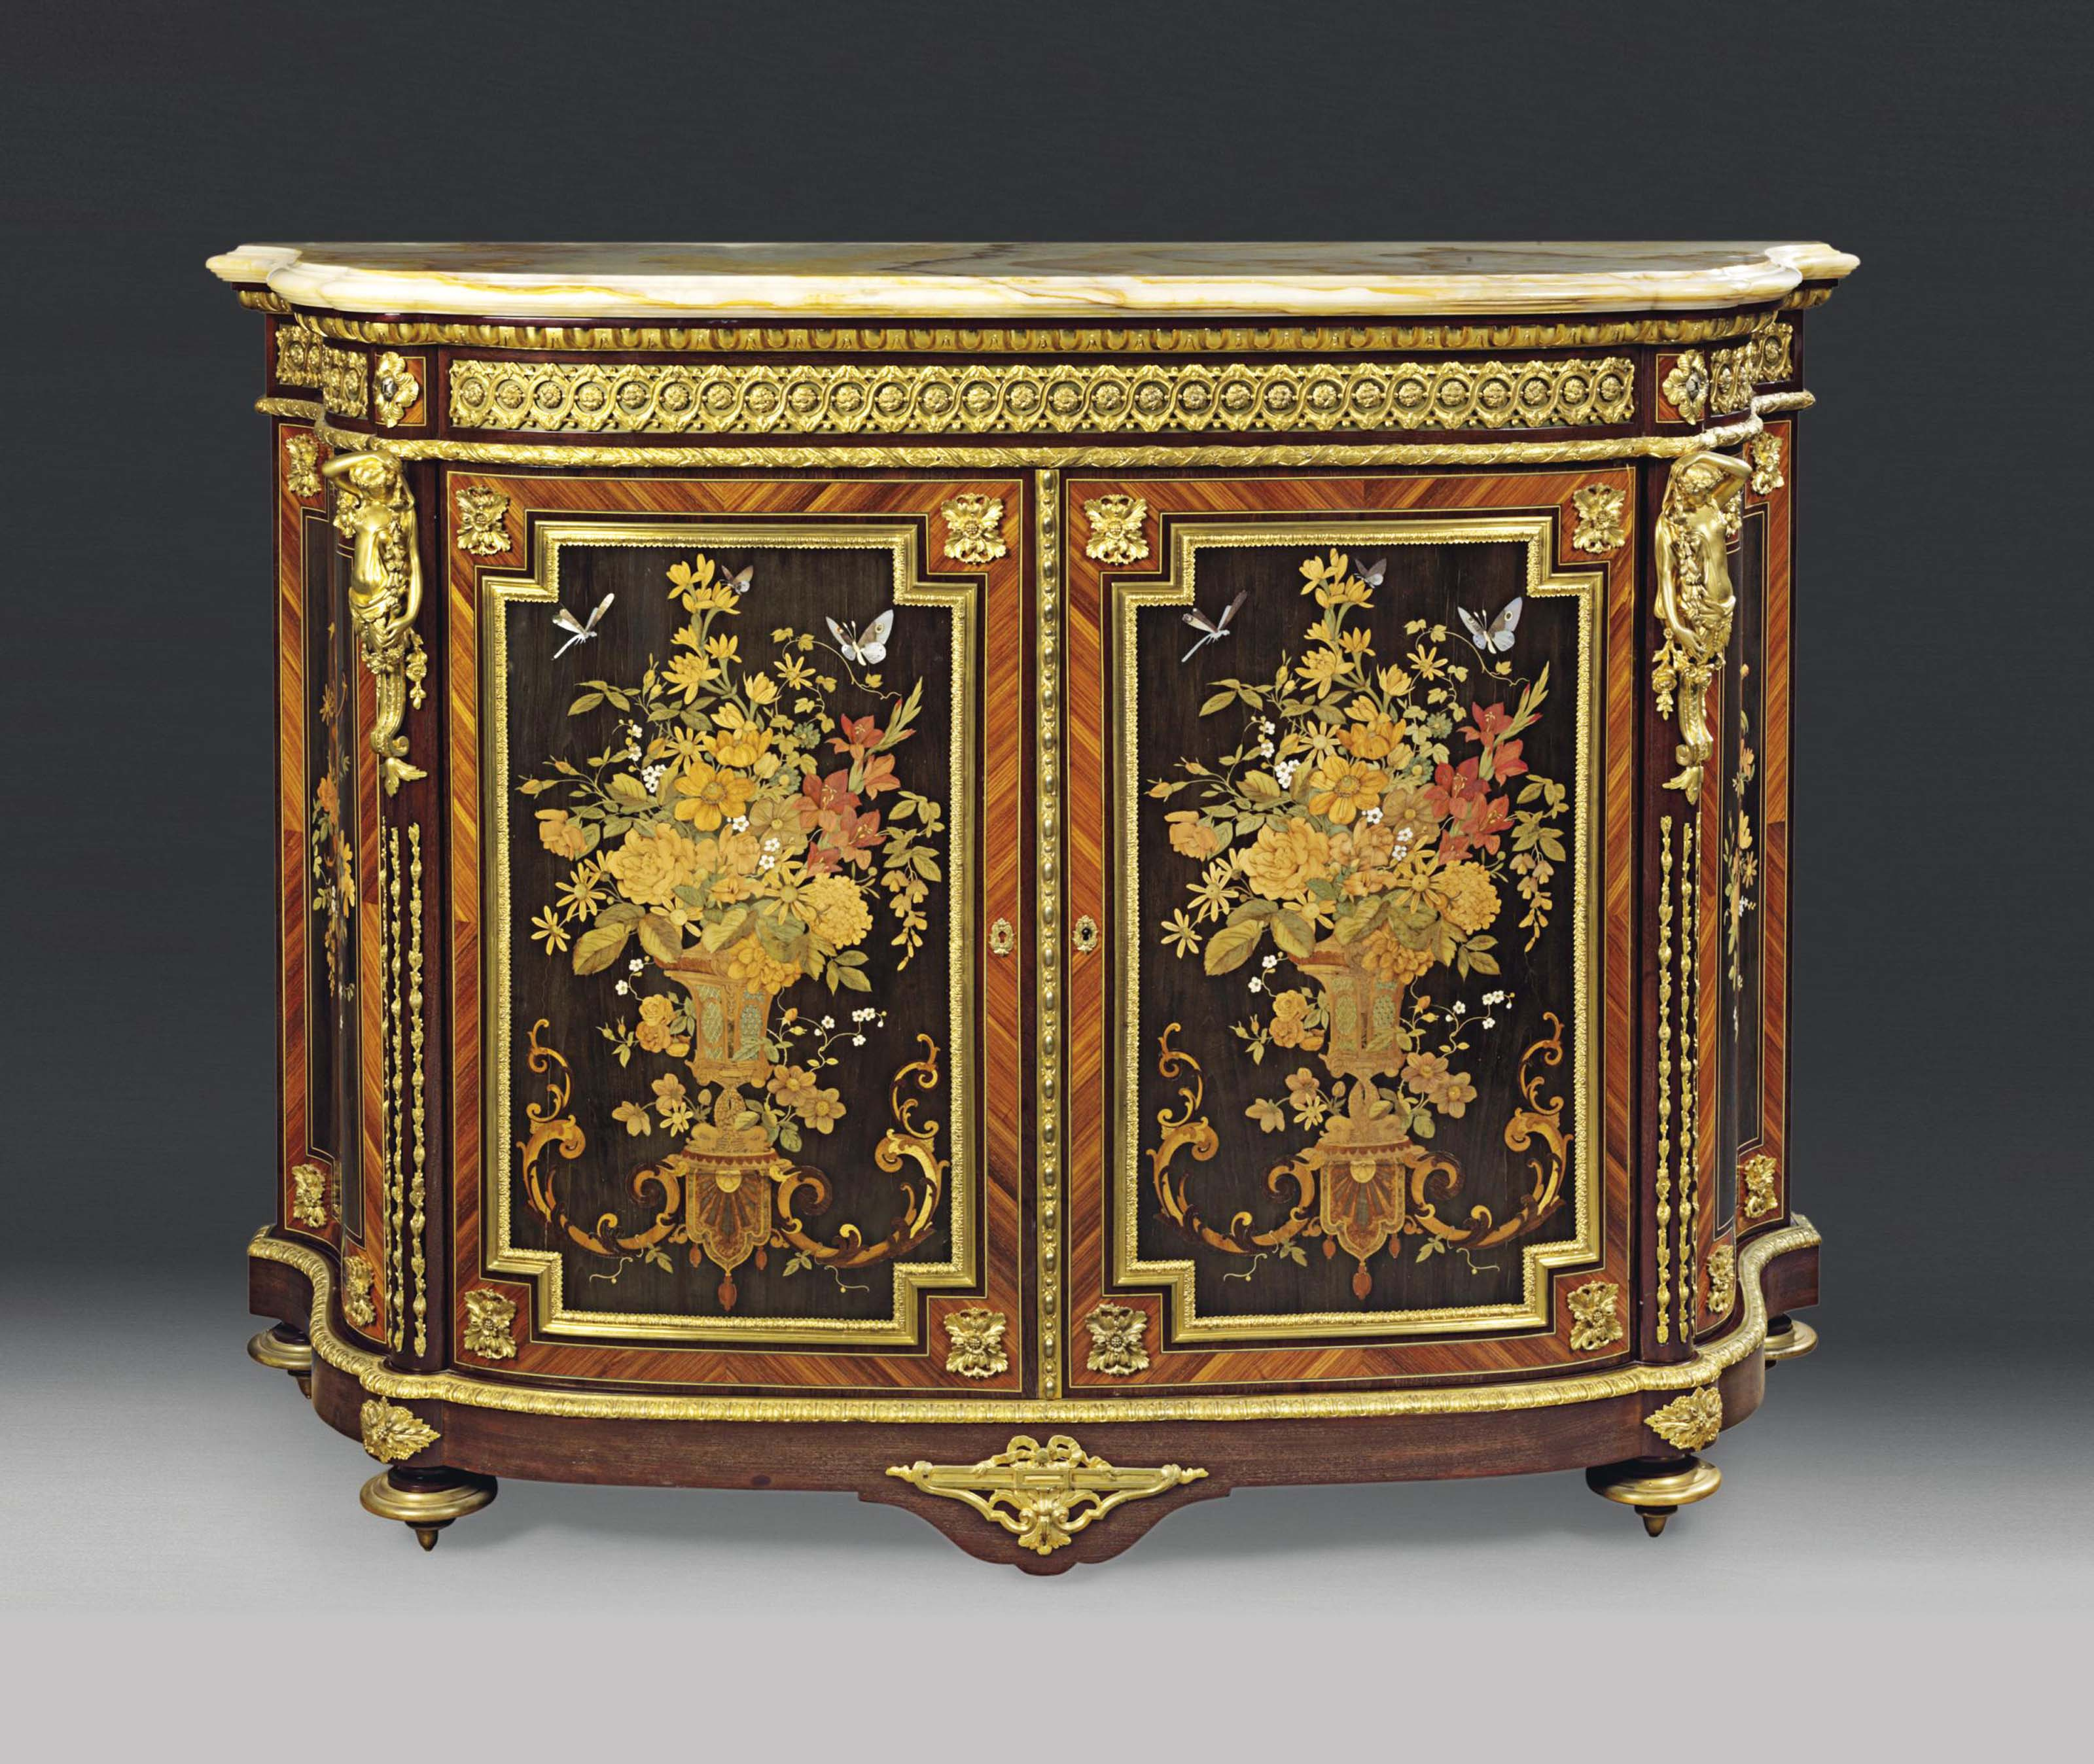 a louis philippe ormolu mounted tulipwood ebony sycamore amaranth mother of pearl ivory and. Black Bedroom Furniture Sets. Home Design Ideas